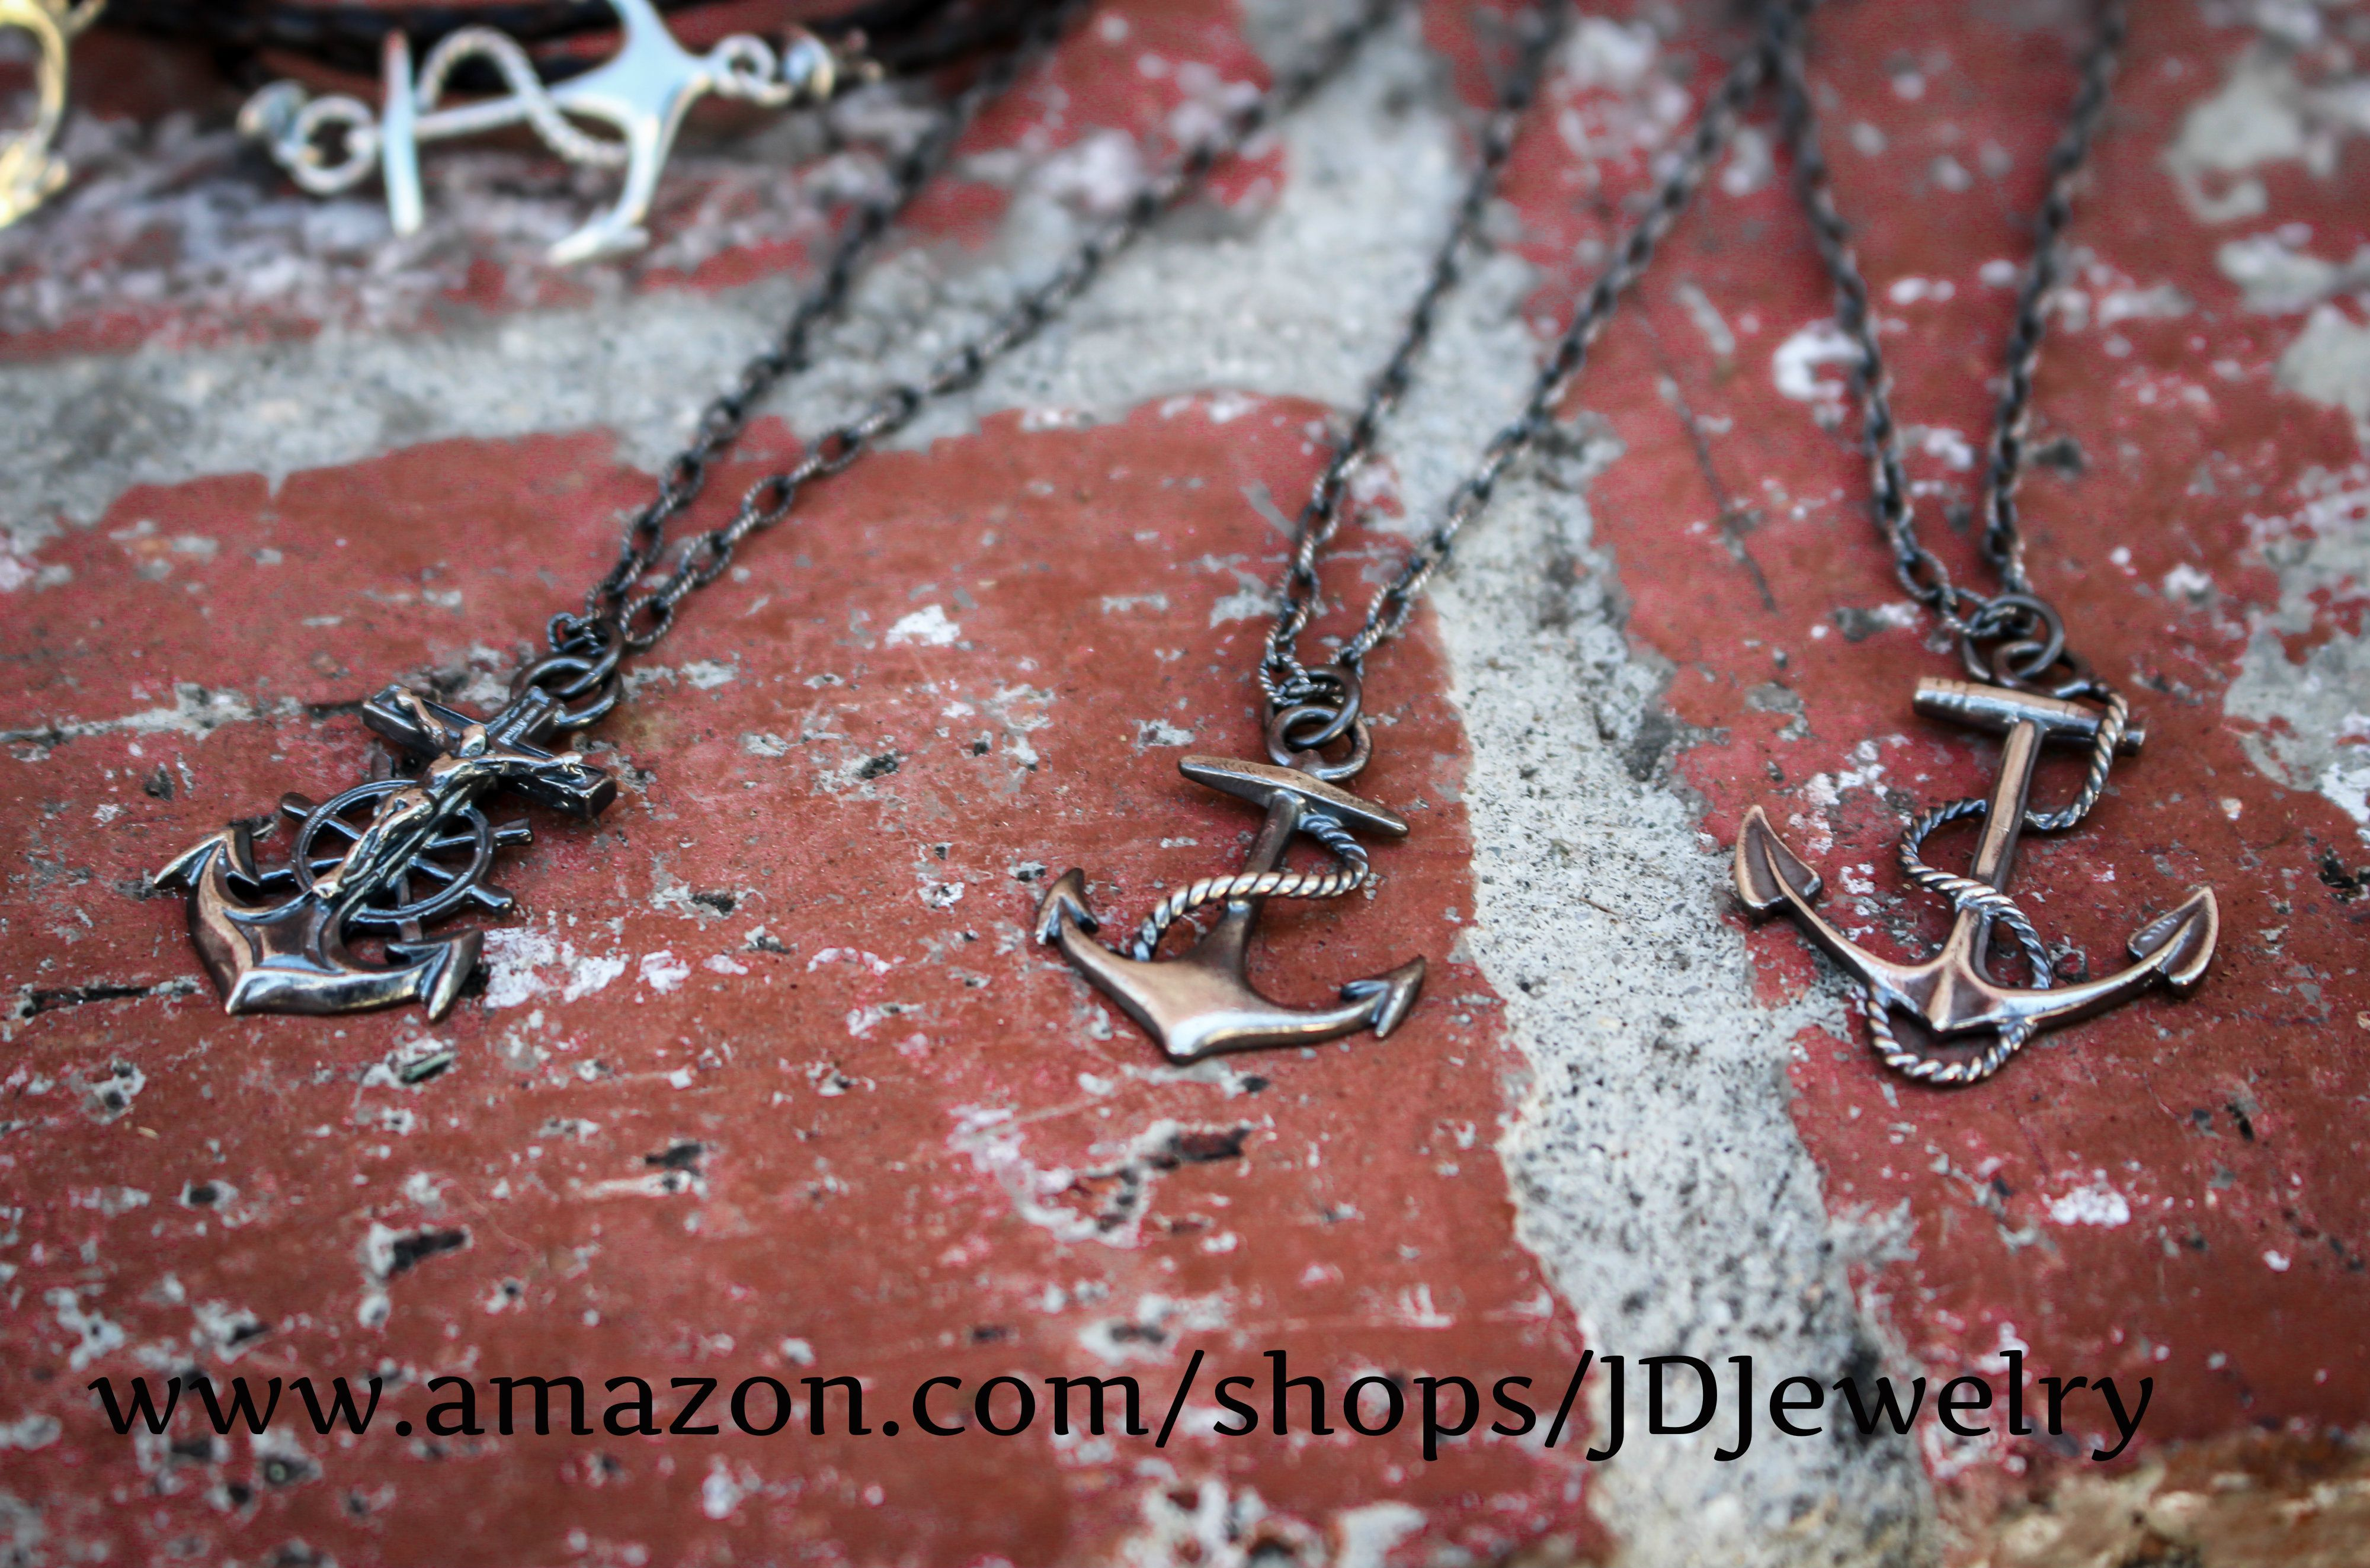 Pin by jd jewelry on